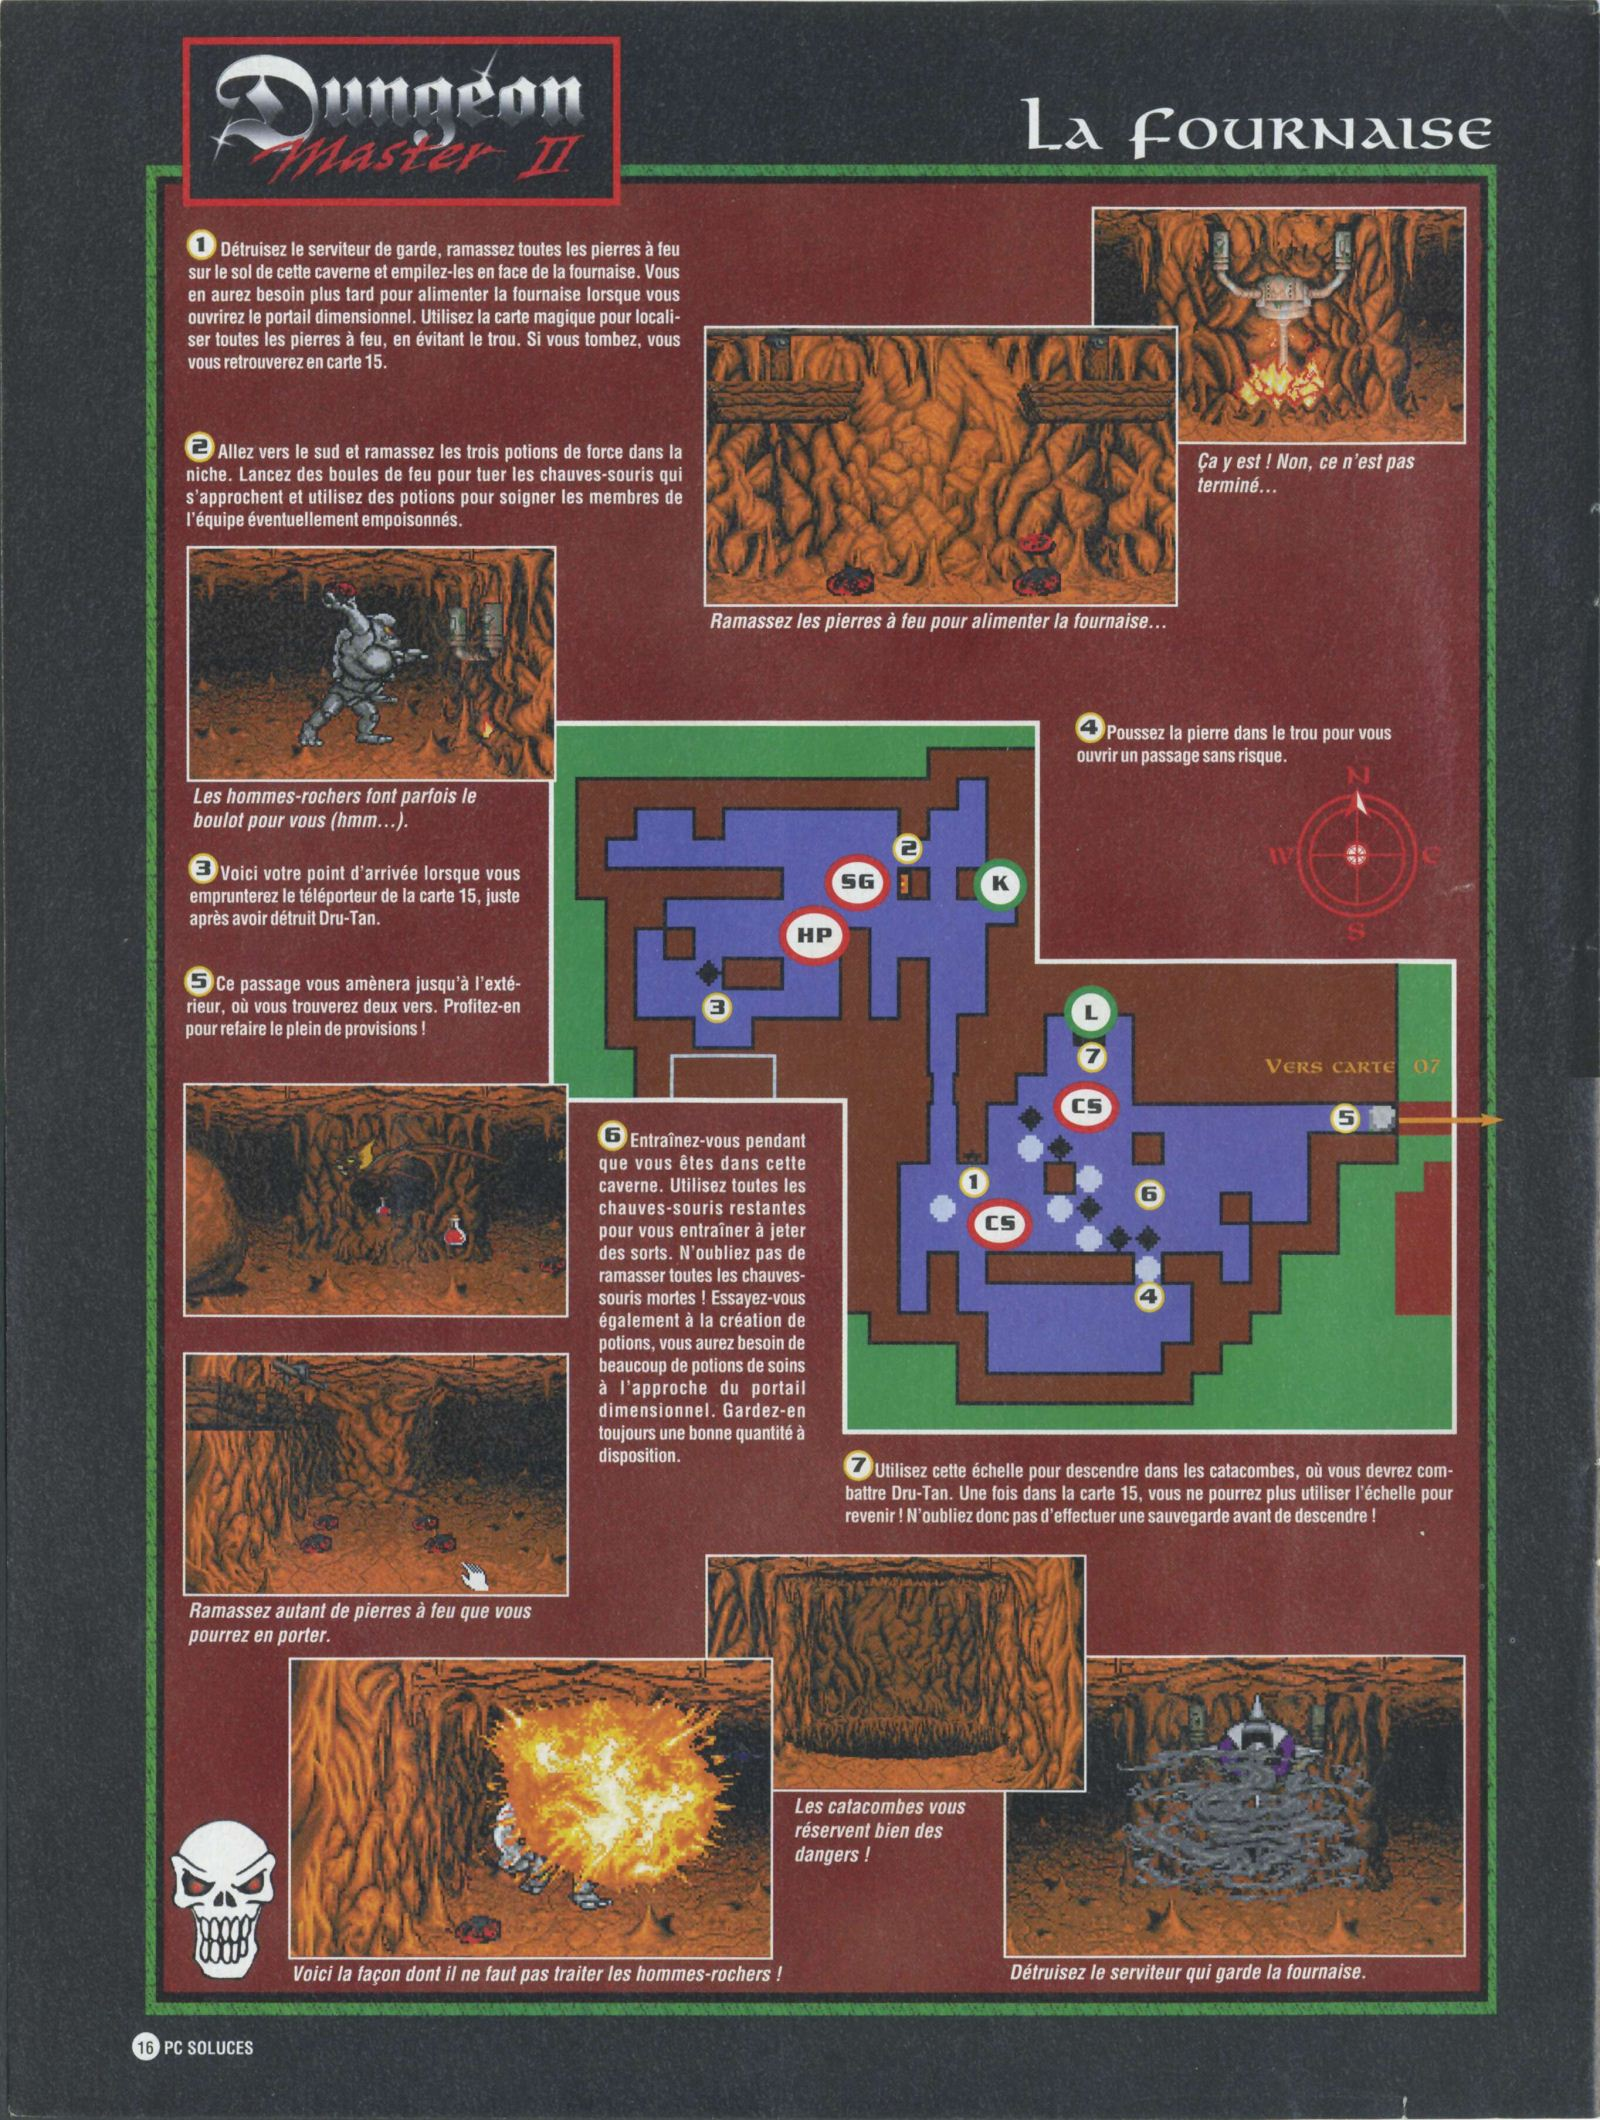 Dungeon Master II solution published in French magazine 'PC Soluces', Issue#1, February-March 1996, Page16